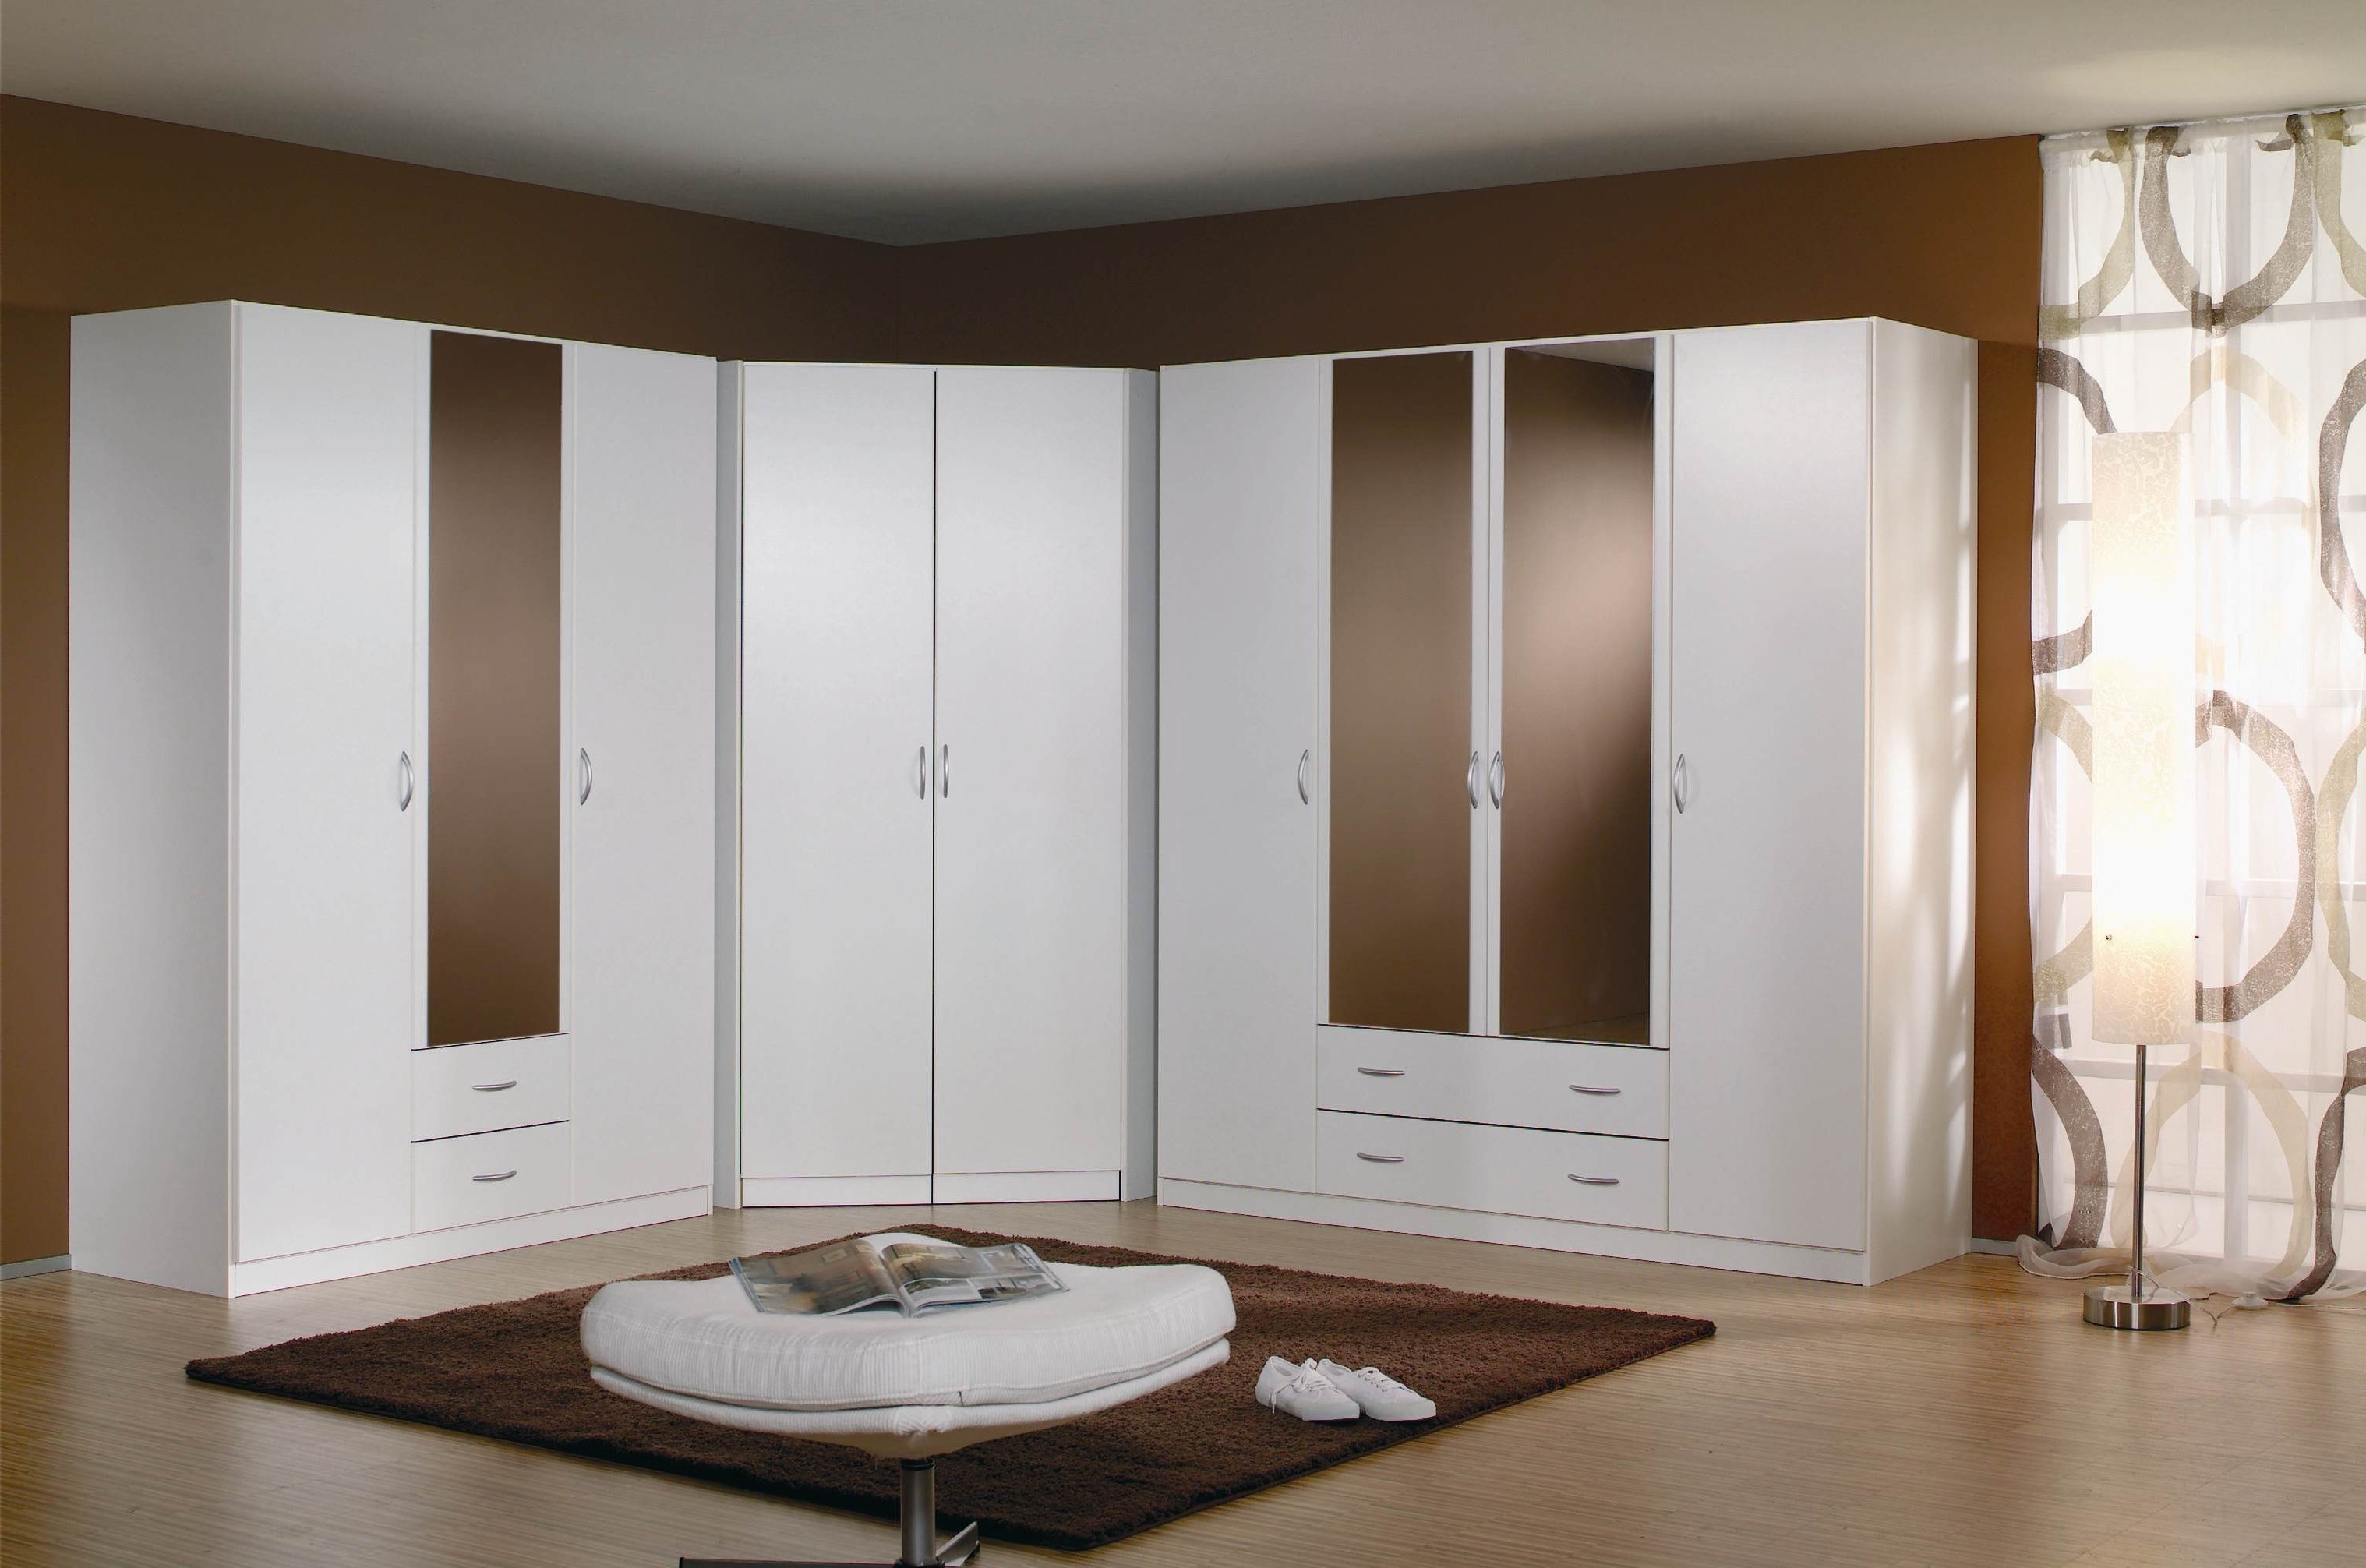 armoire d angle pour chambre armoire id es de. Black Bedroom Furniture Sets. Home Design Ideas